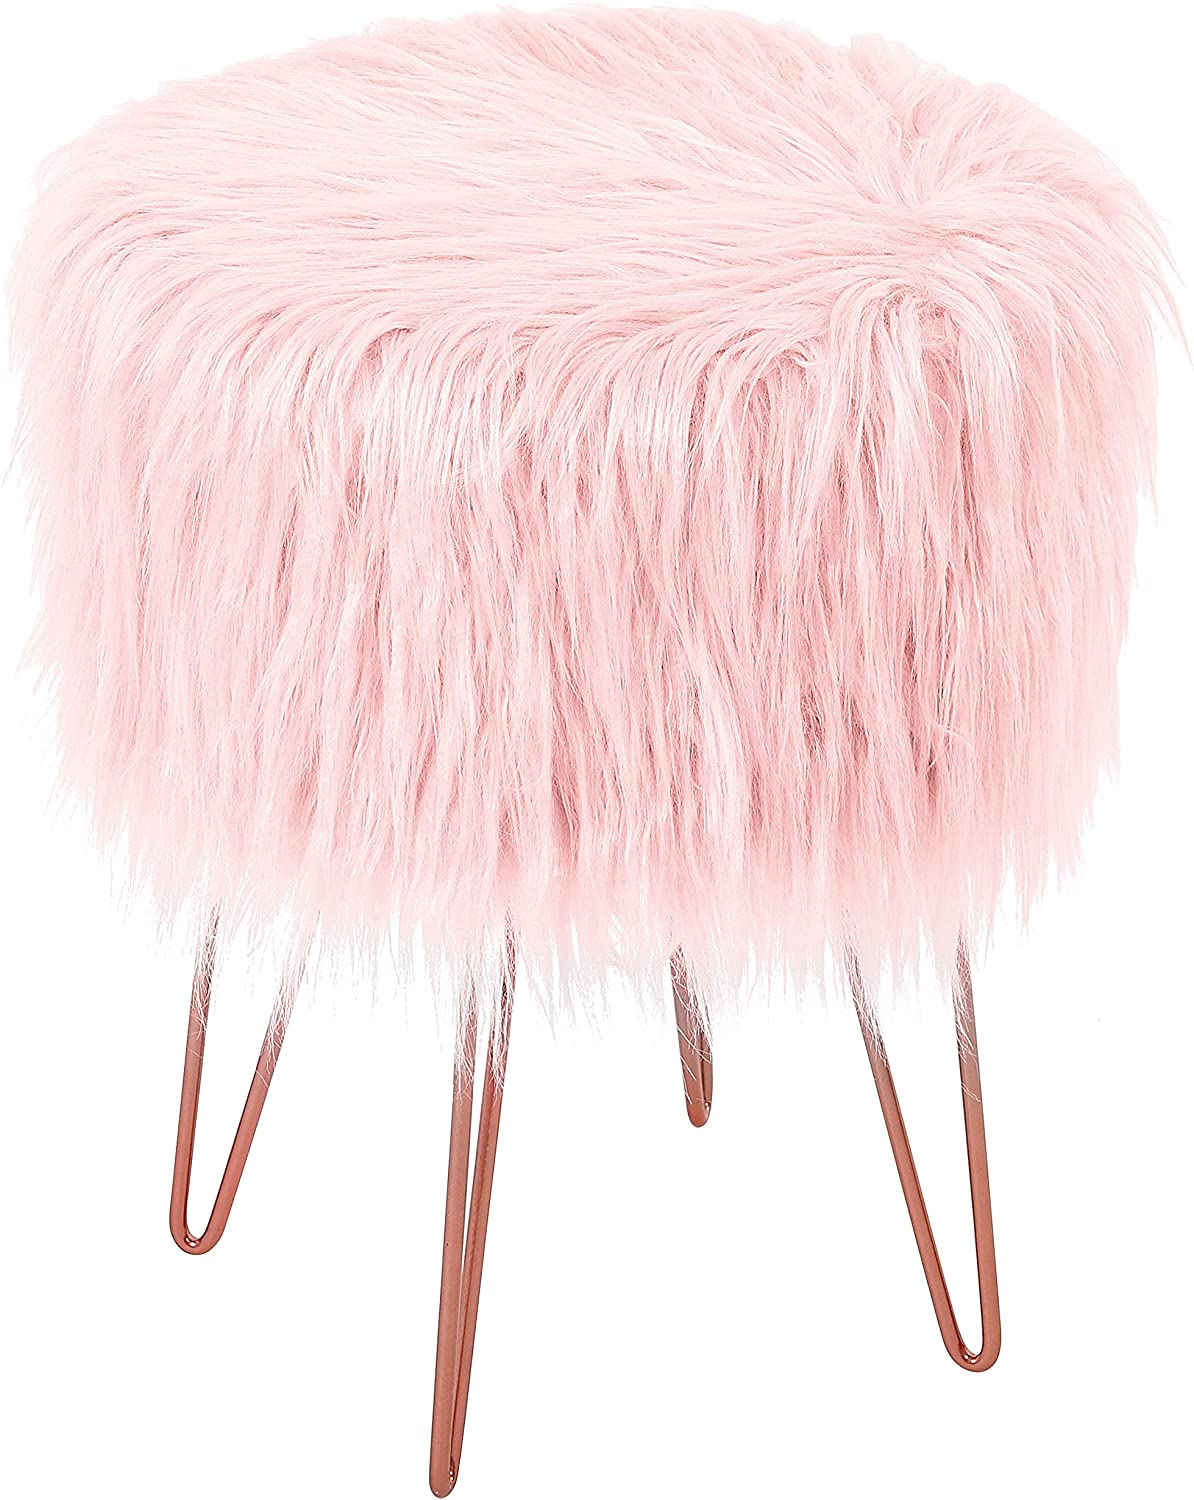 BIRDROCK HOME Pink Faux Fur Foot Stool Ottoman – Soft Compact Padded Seat - Living Room, Bedroom and Kids Room Chair – Hair Pin Metal Legs Upholstered Decorative Furniture Rest – Vanity Seat